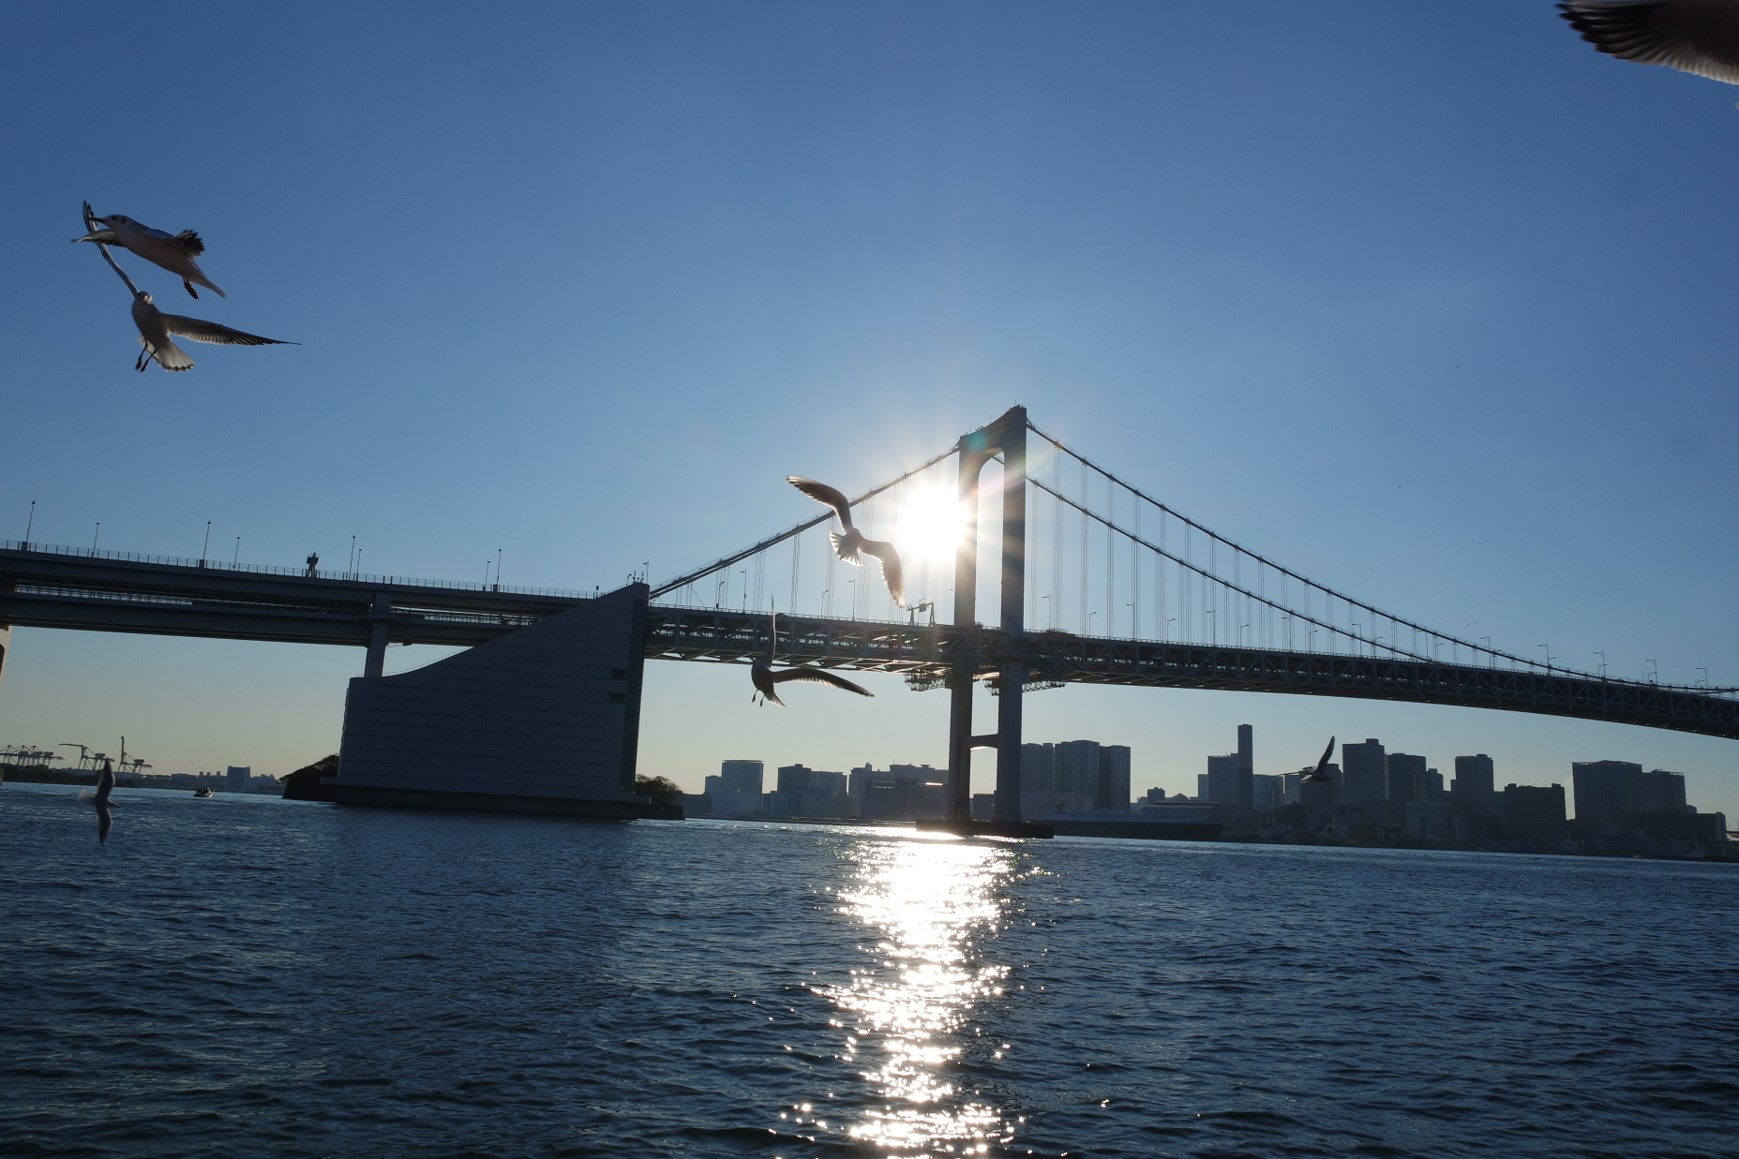 Ride the SKY Bus to see Tokyo by Bus and Boat at the same time!